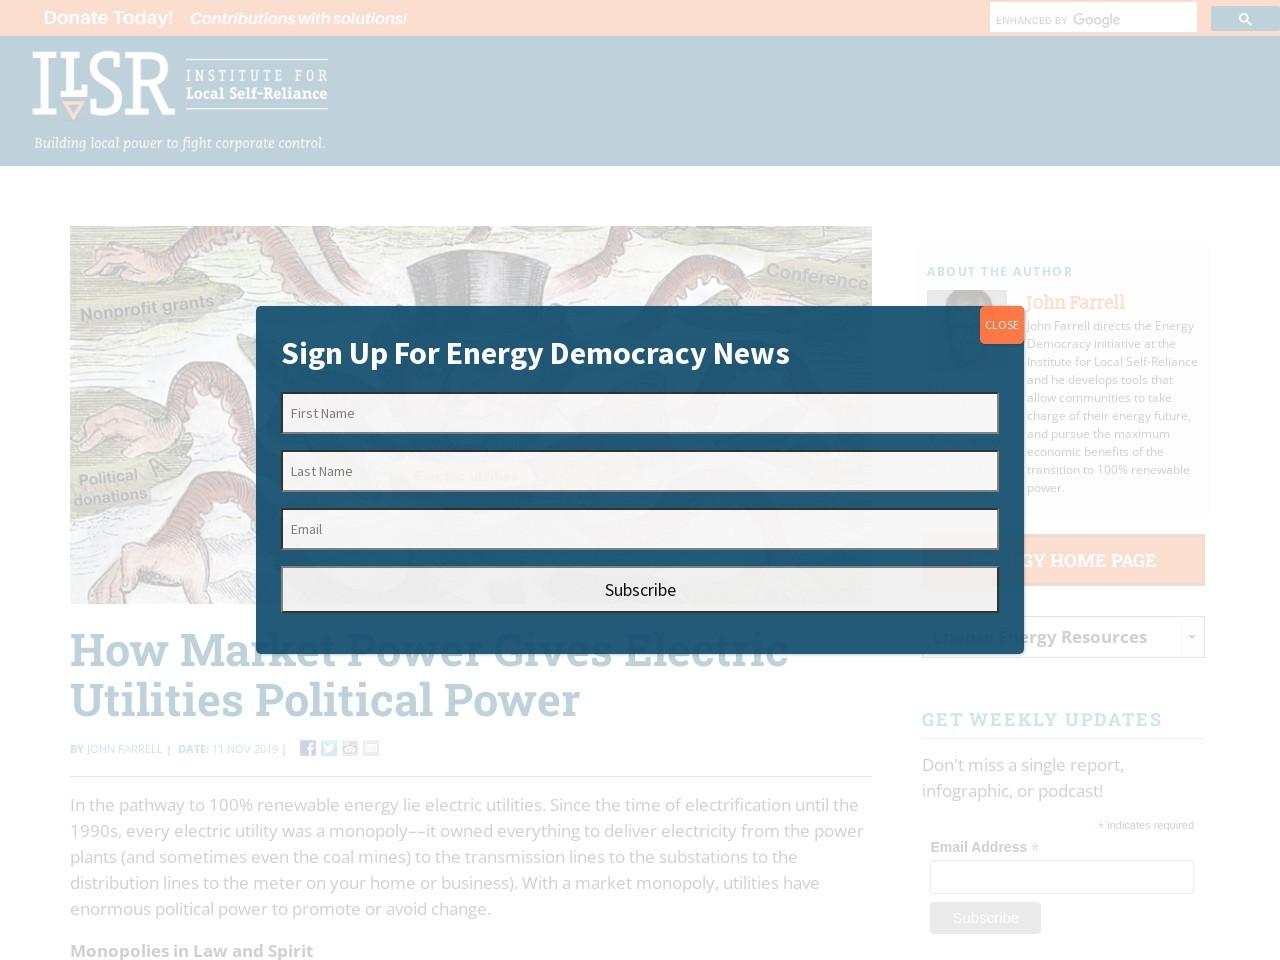 How Market Power Gives Electric Utilities Political Power